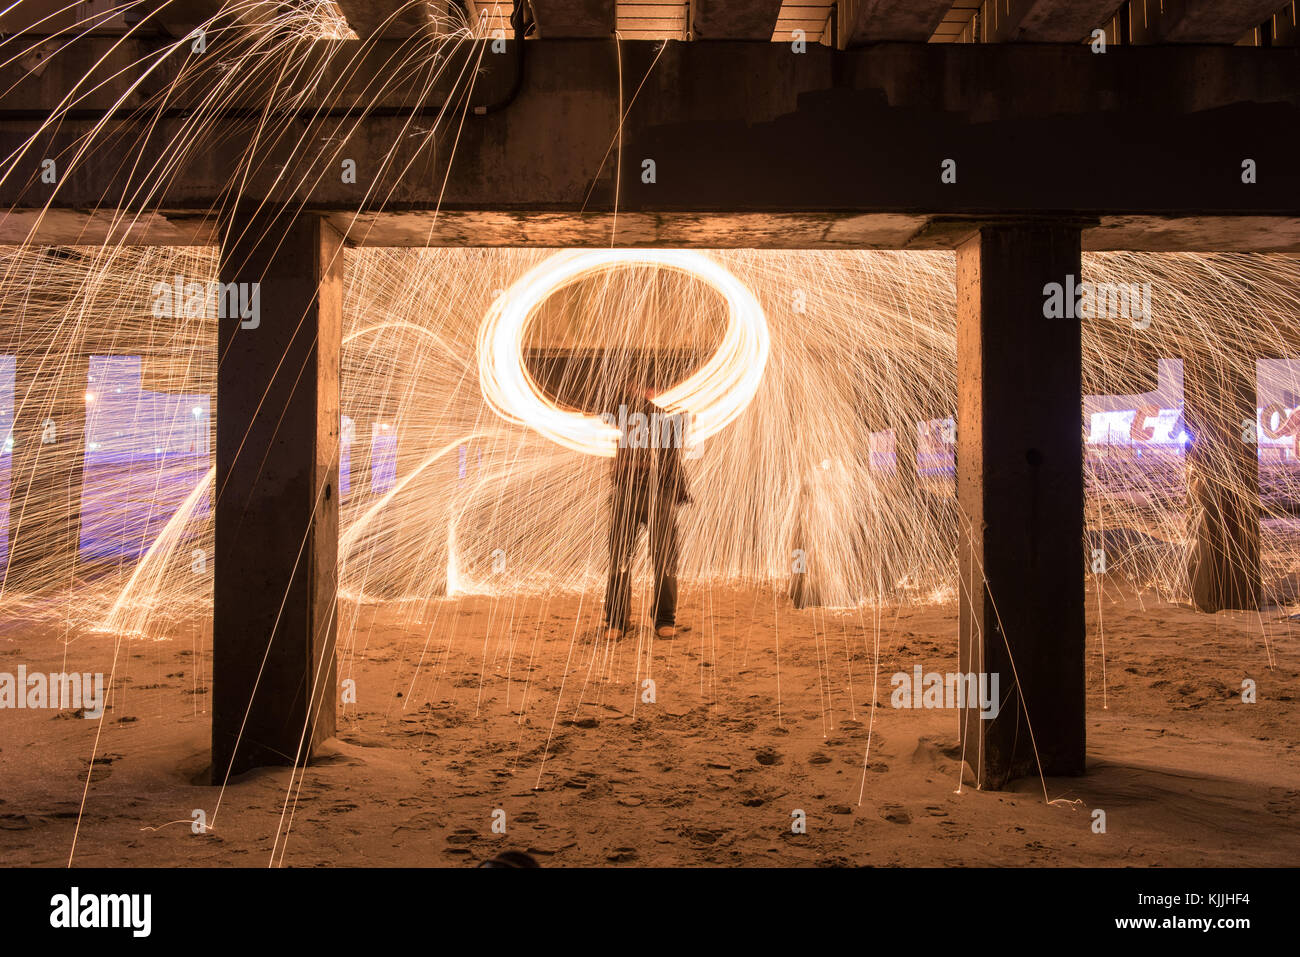 Showers of hot glowing sparks from spinning steel wool at Coney Island Beach, Brooklyn, New York. Stock Photo